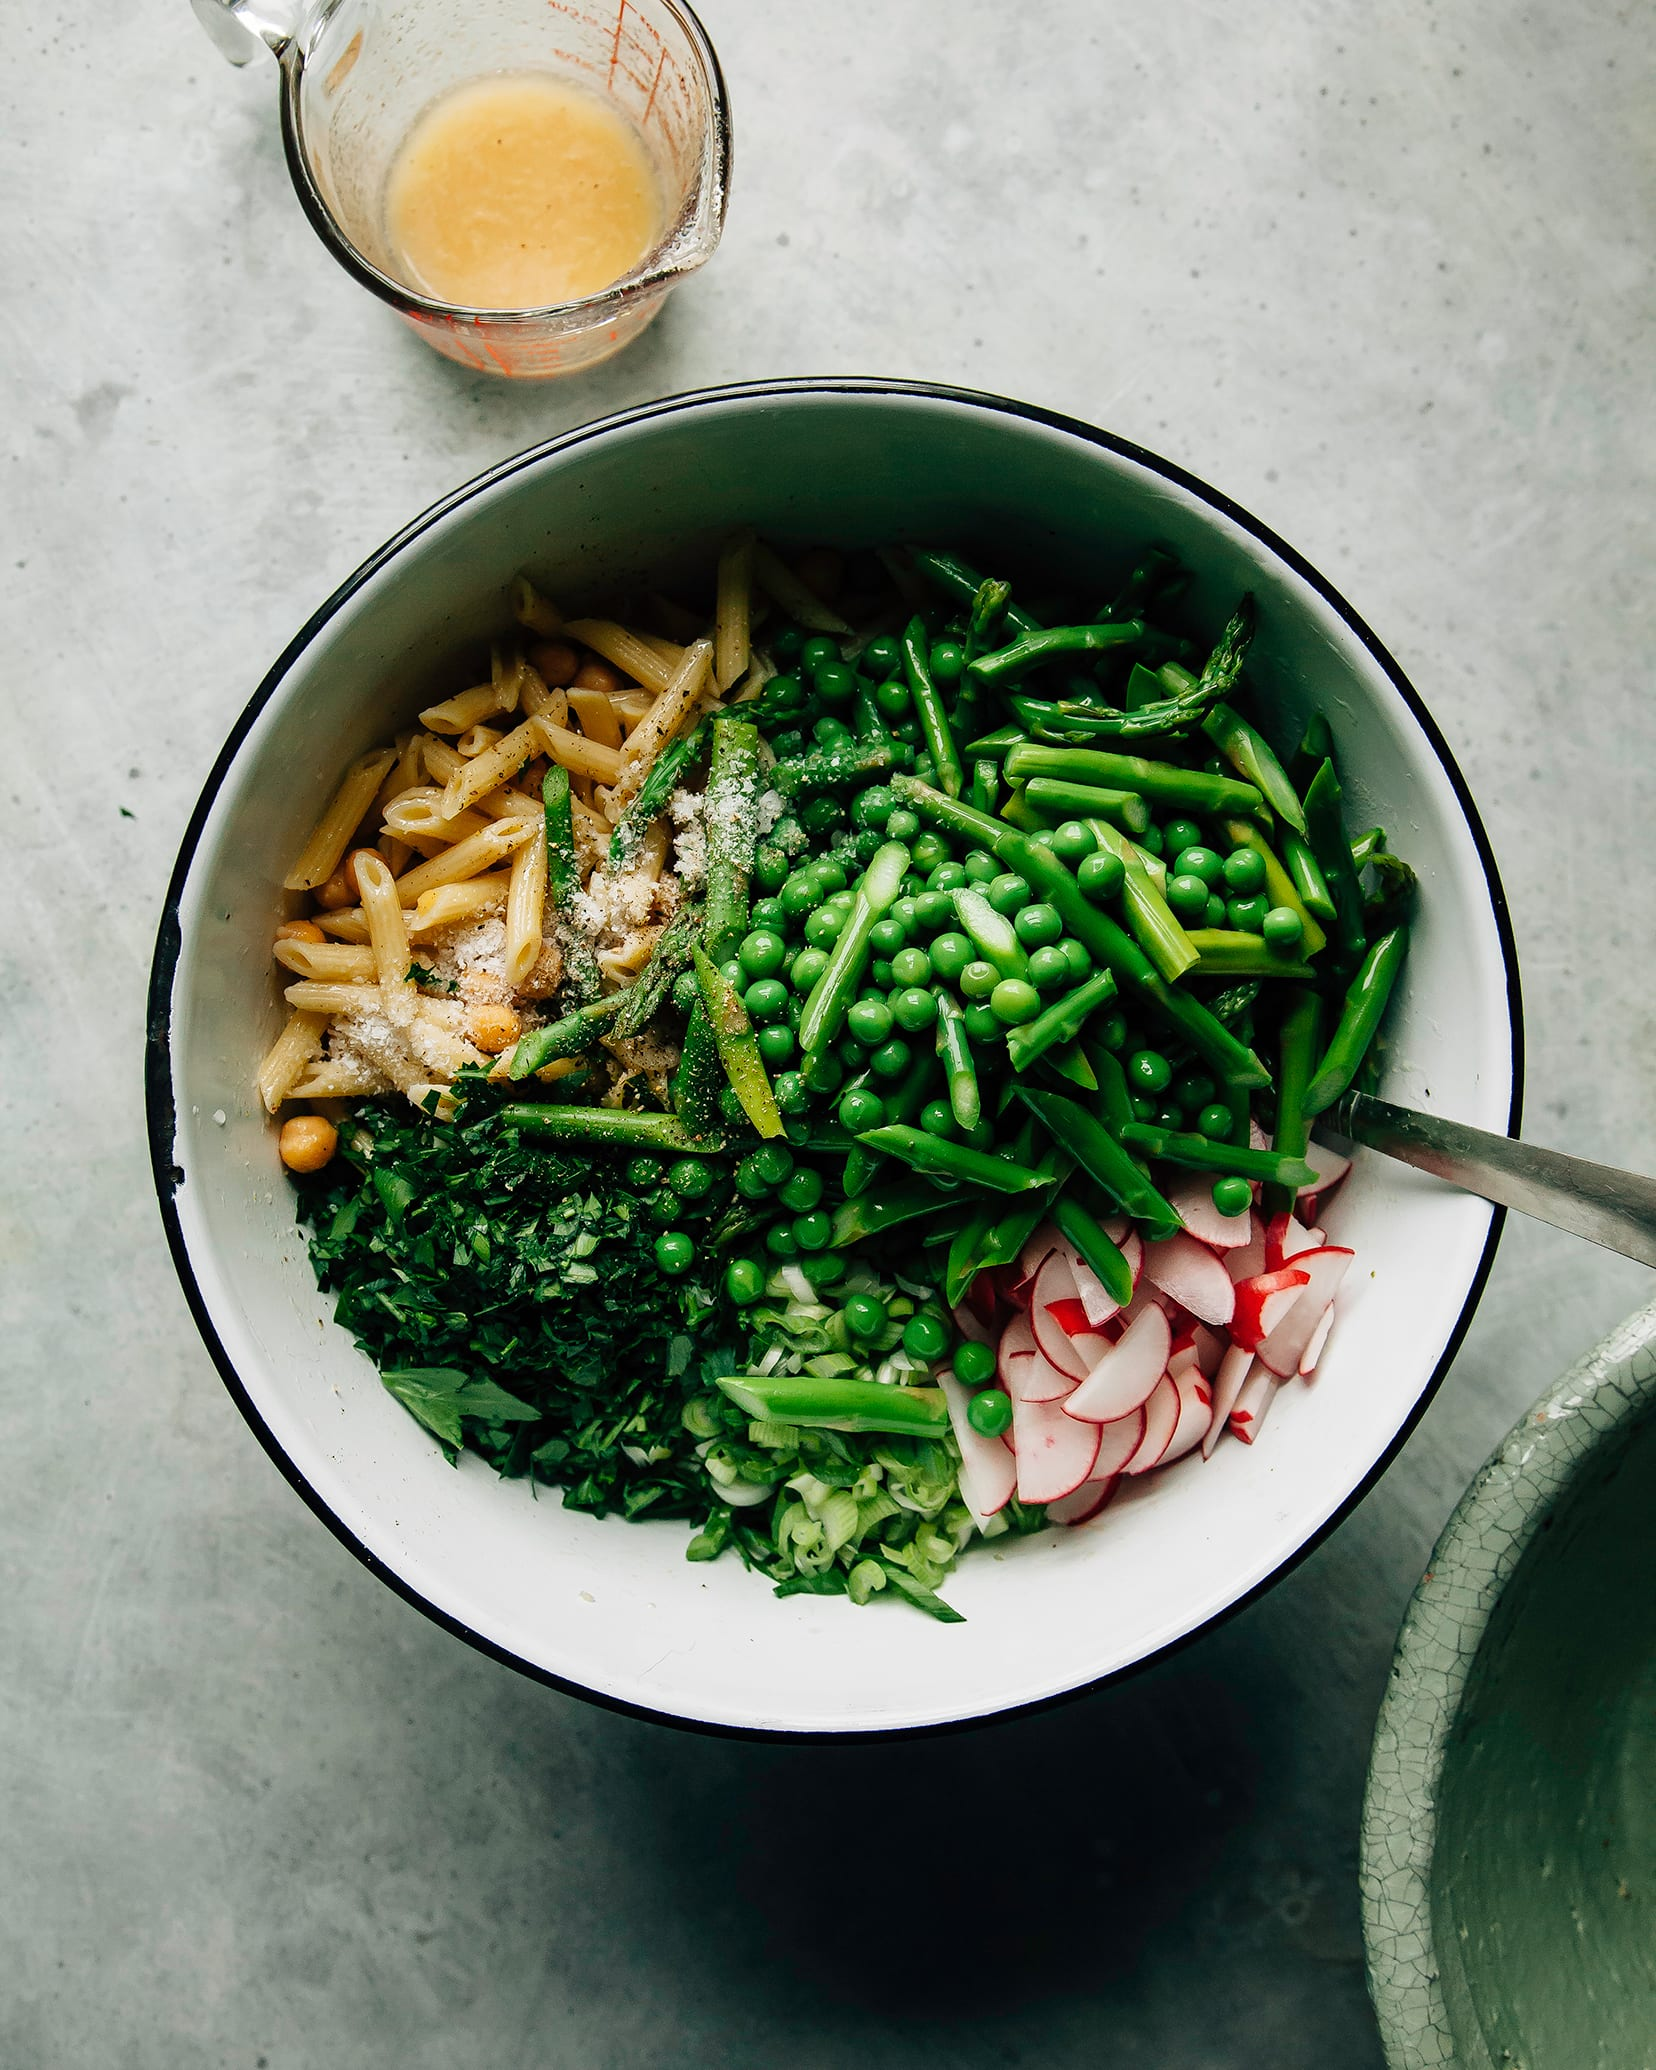 An overhead shot of a bunch of green vegetables, cooked pasta and chickpeas in a white bowl with a black rim. There is a glass measuring cup of vinaigrette nearby.